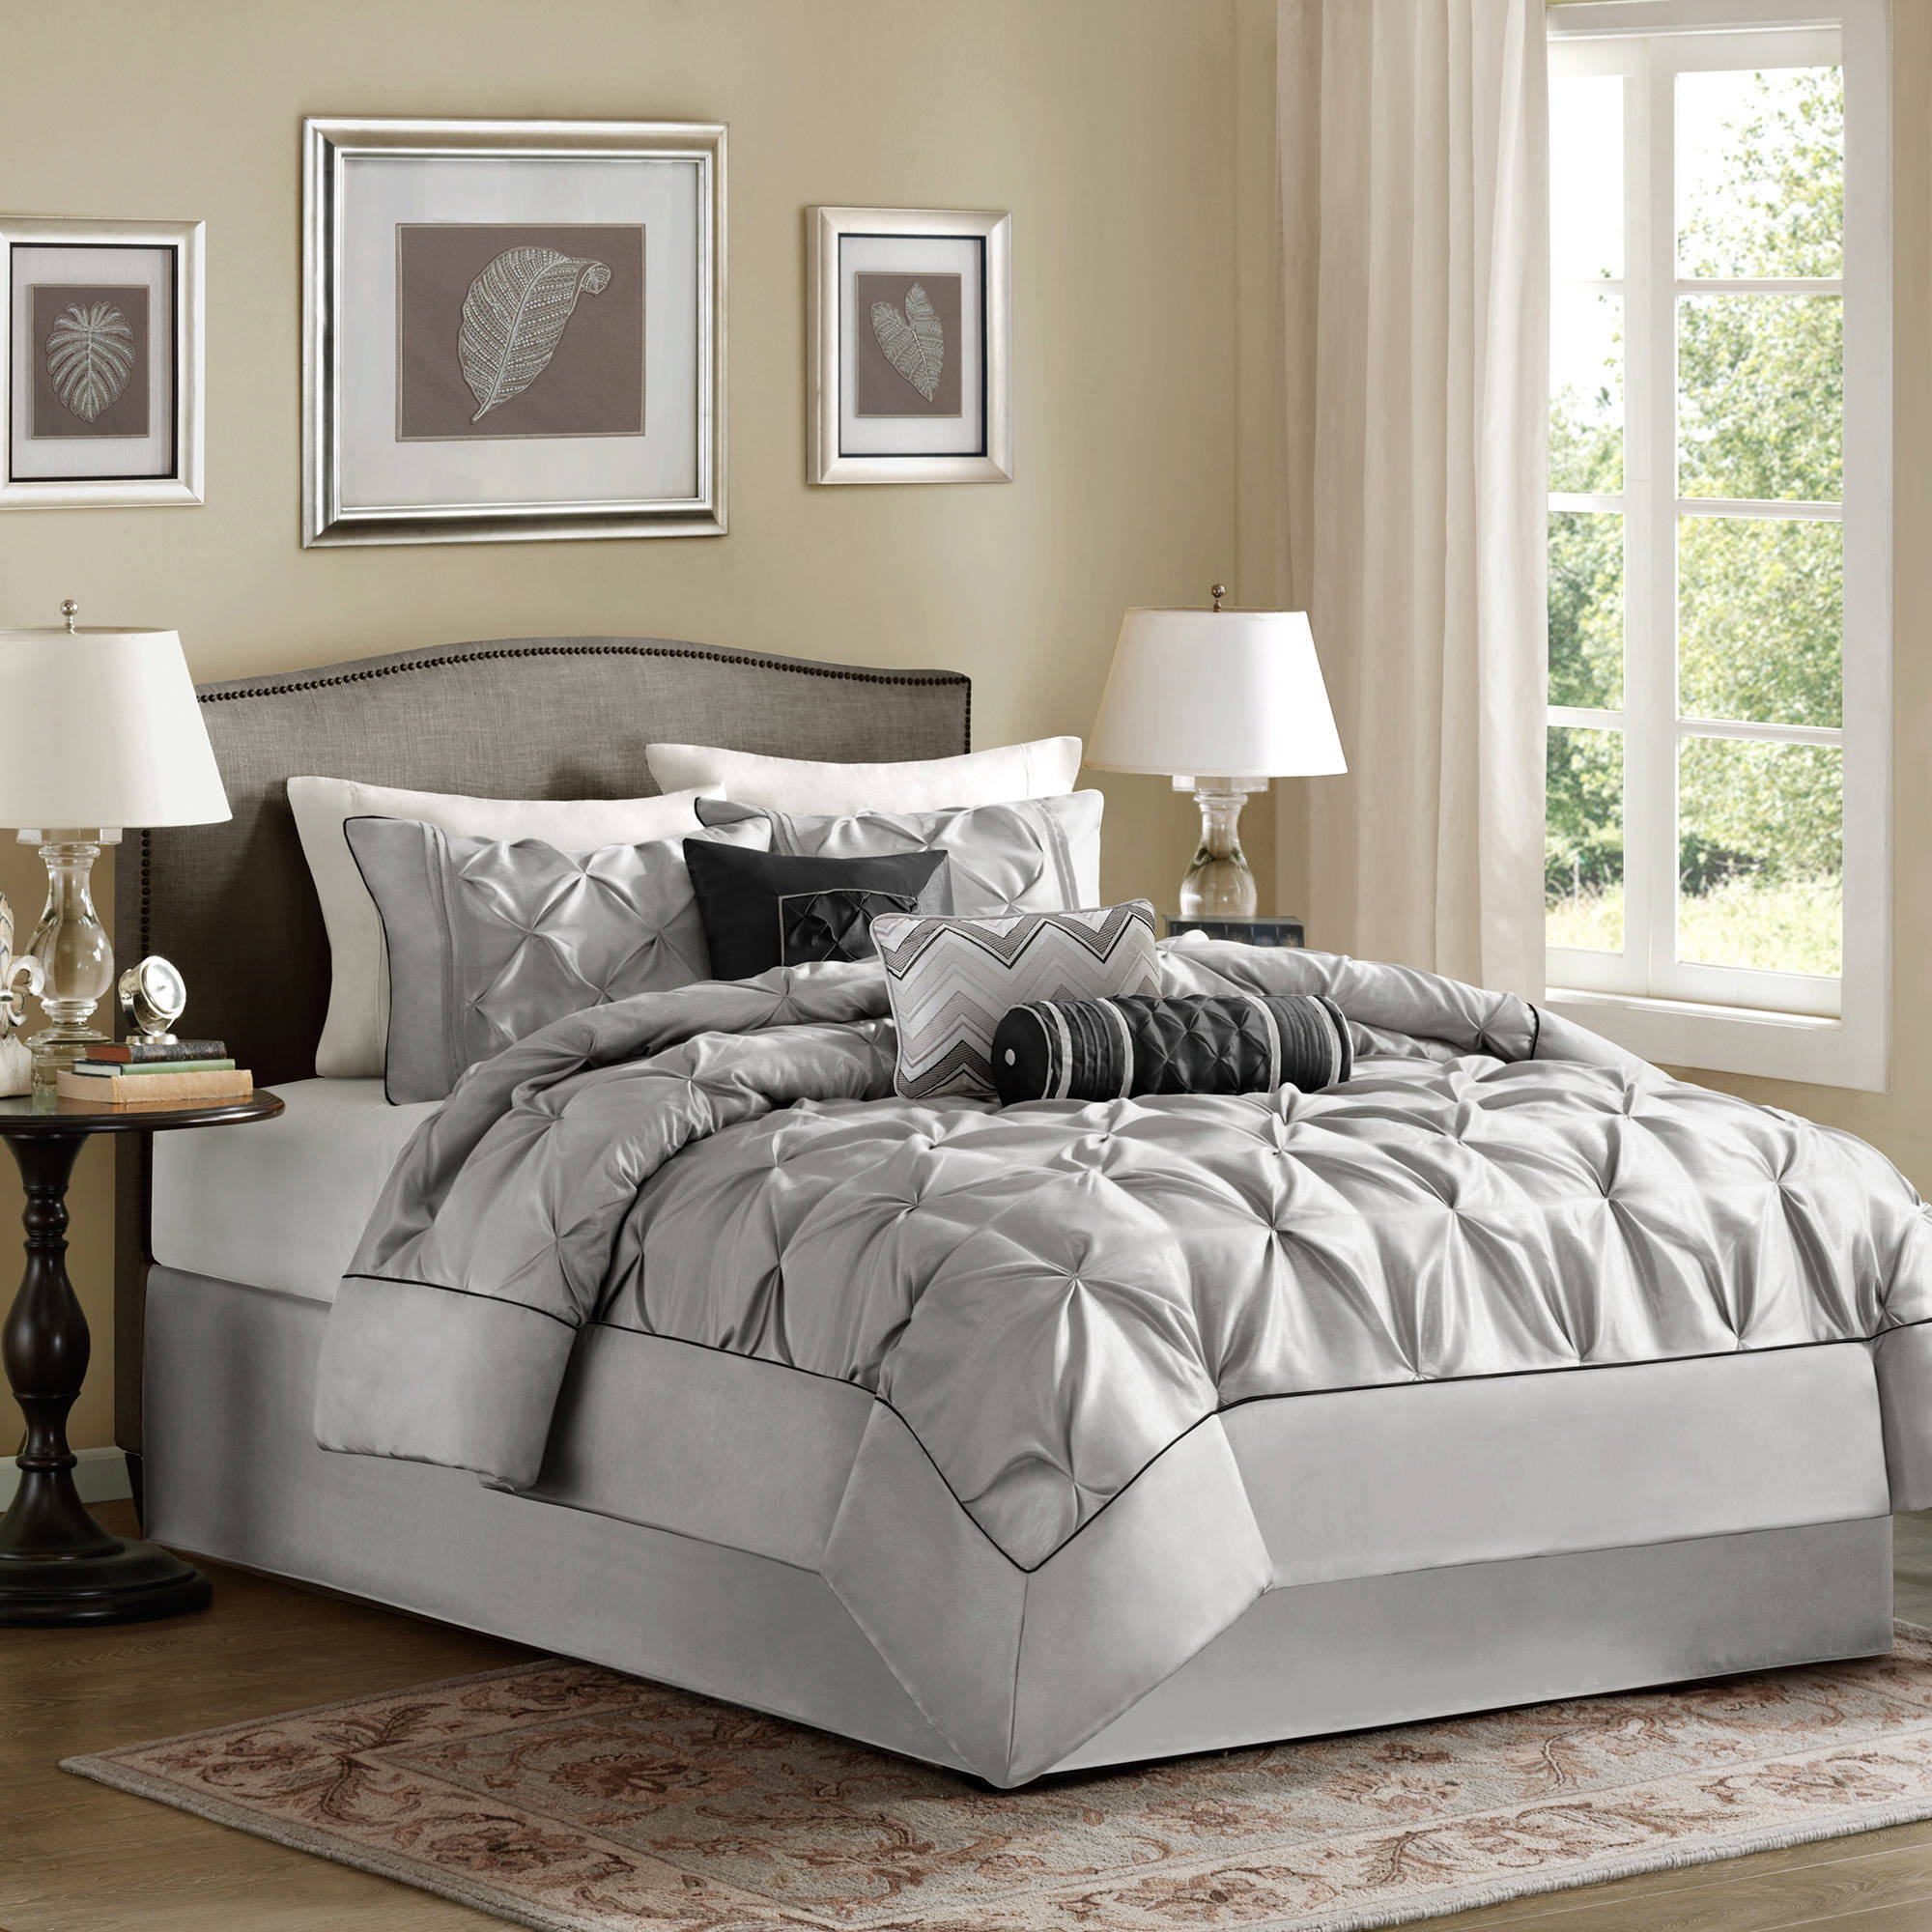 black stylish bedspread intended house to grey gray beautiful beds bath sets bedding with bed set king regard beyond for and your comforter also